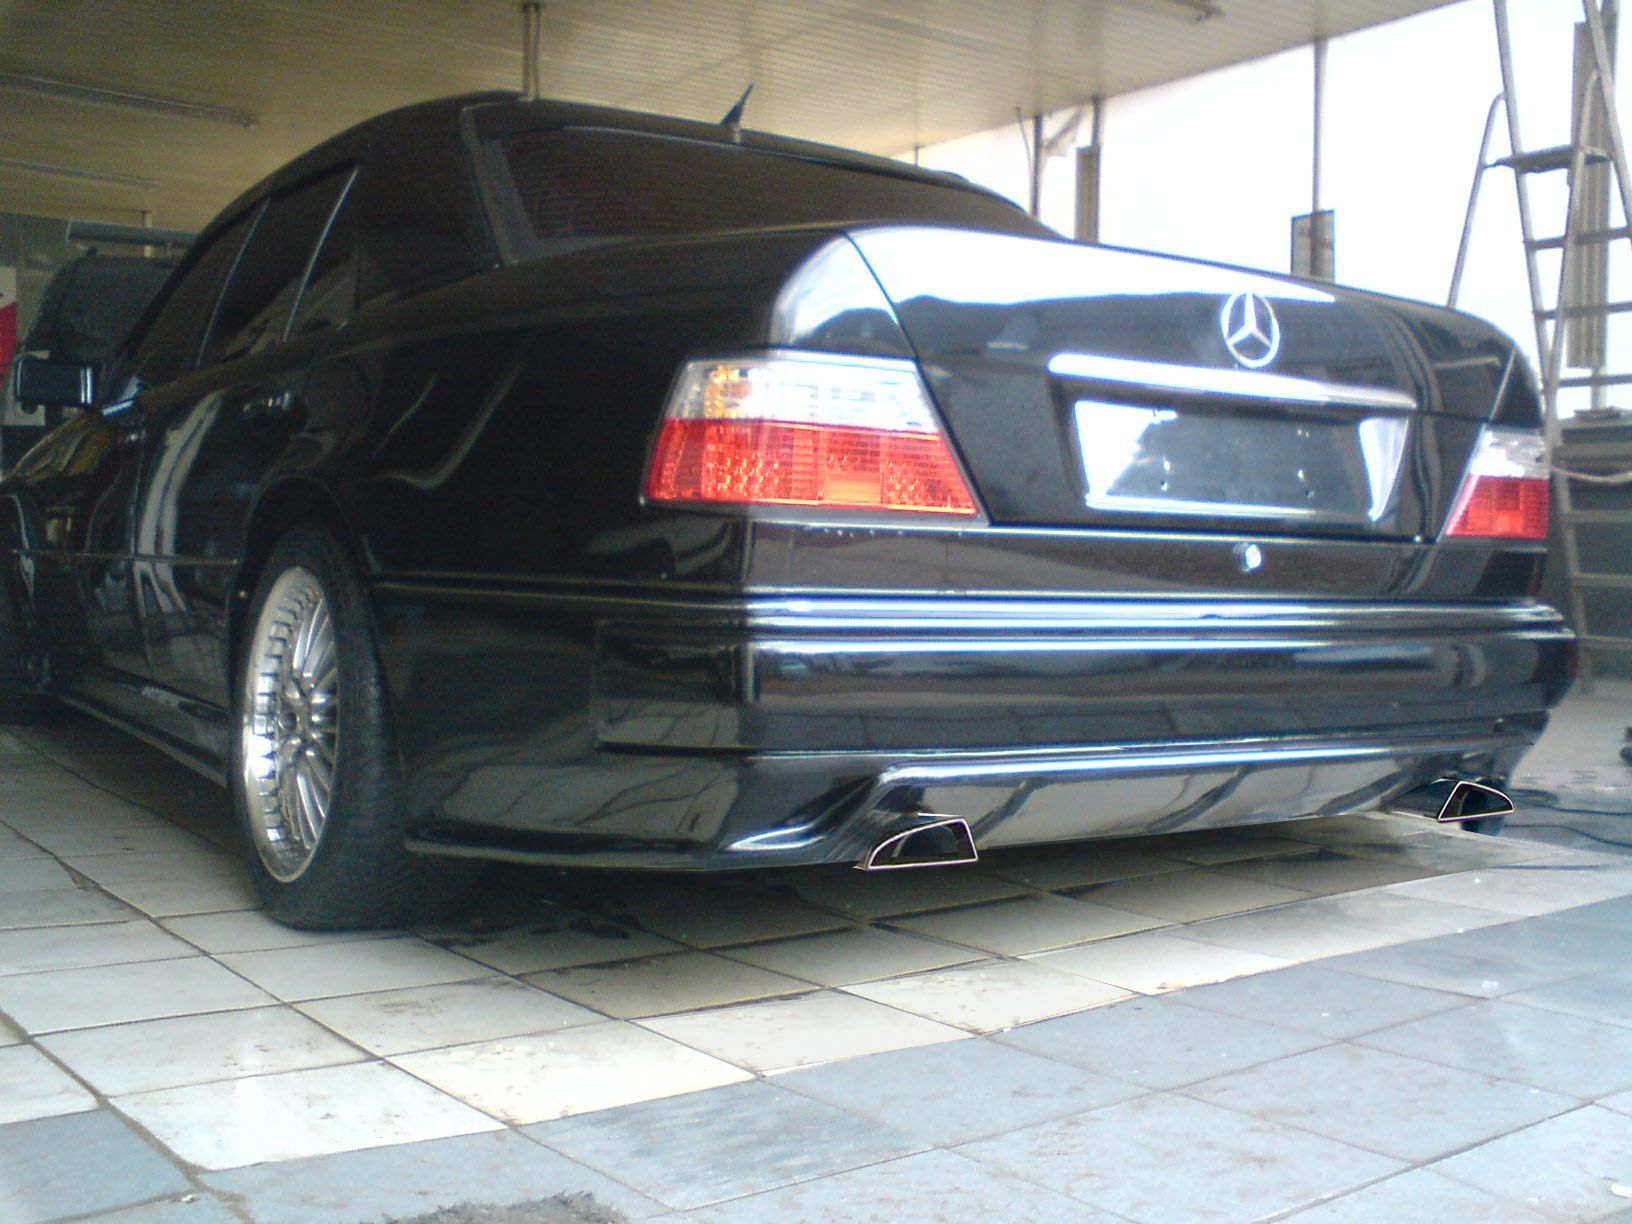 mercedes w124 tuning google search cars motorcycles. Black Bedroom Furniture Sets. Home Design Ideas